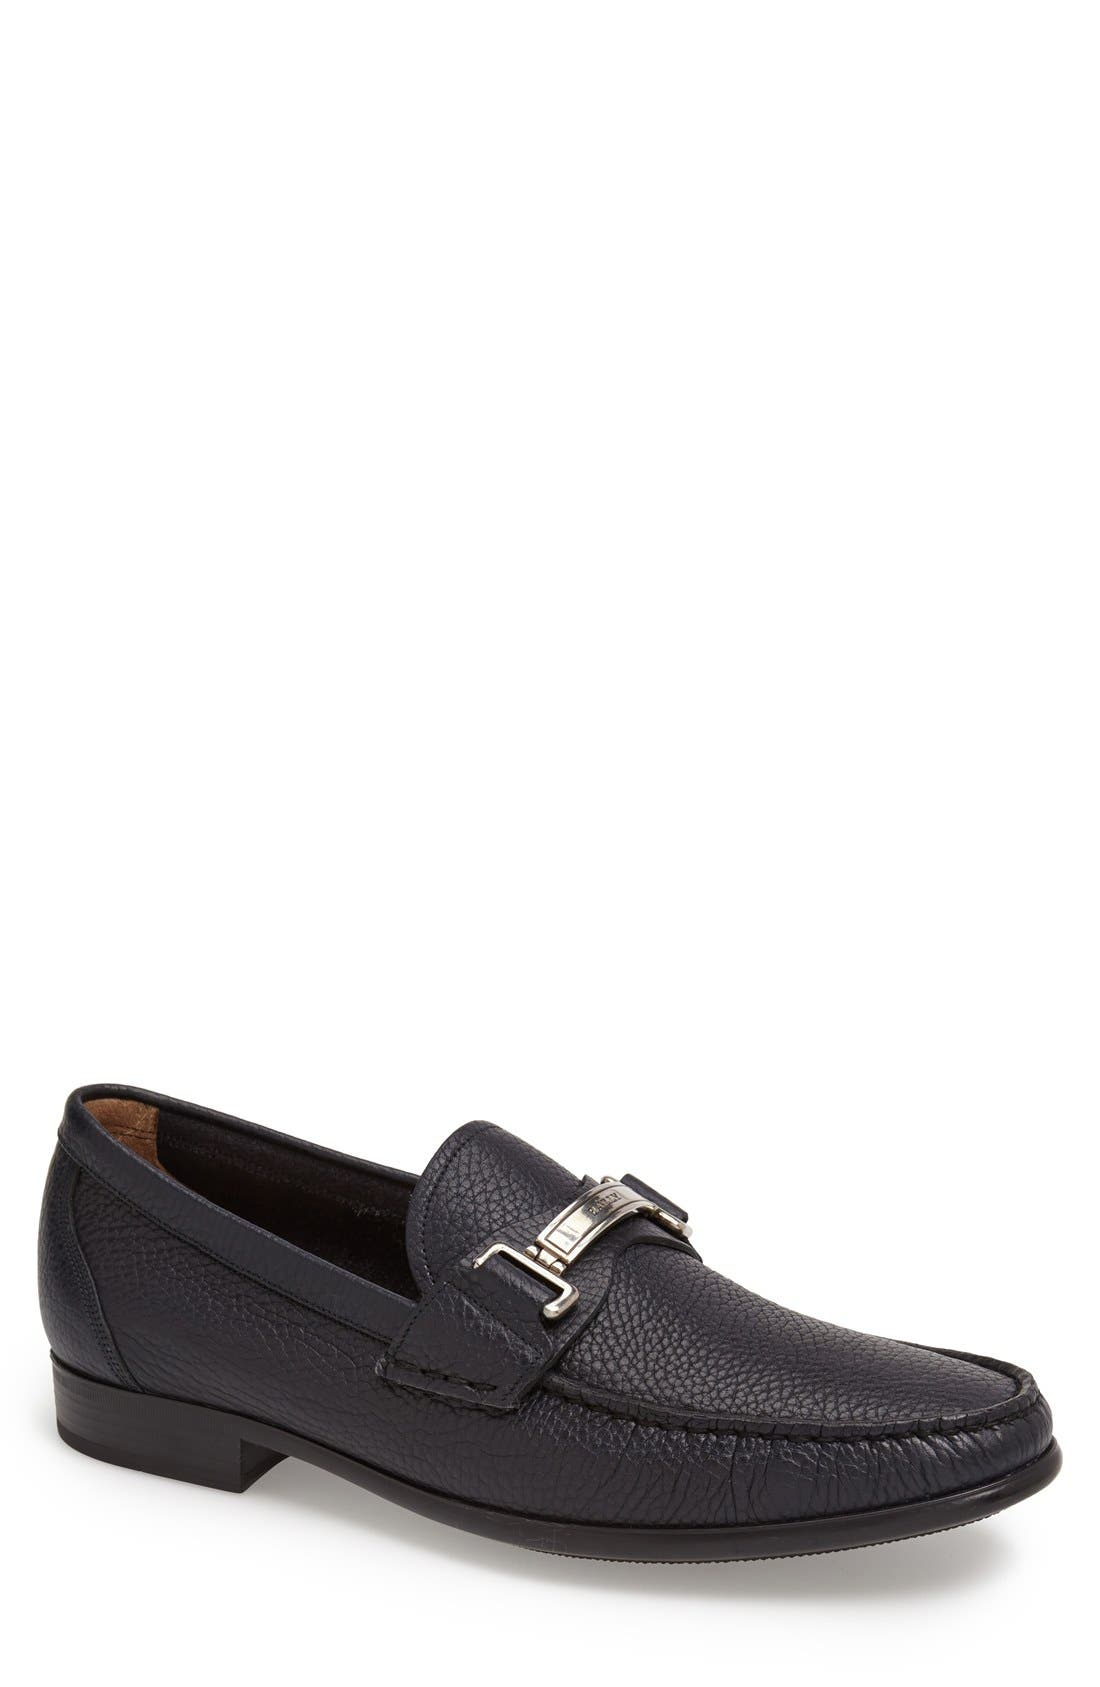 Main Image - Bally 'Corton' Bit Loafer (Men)